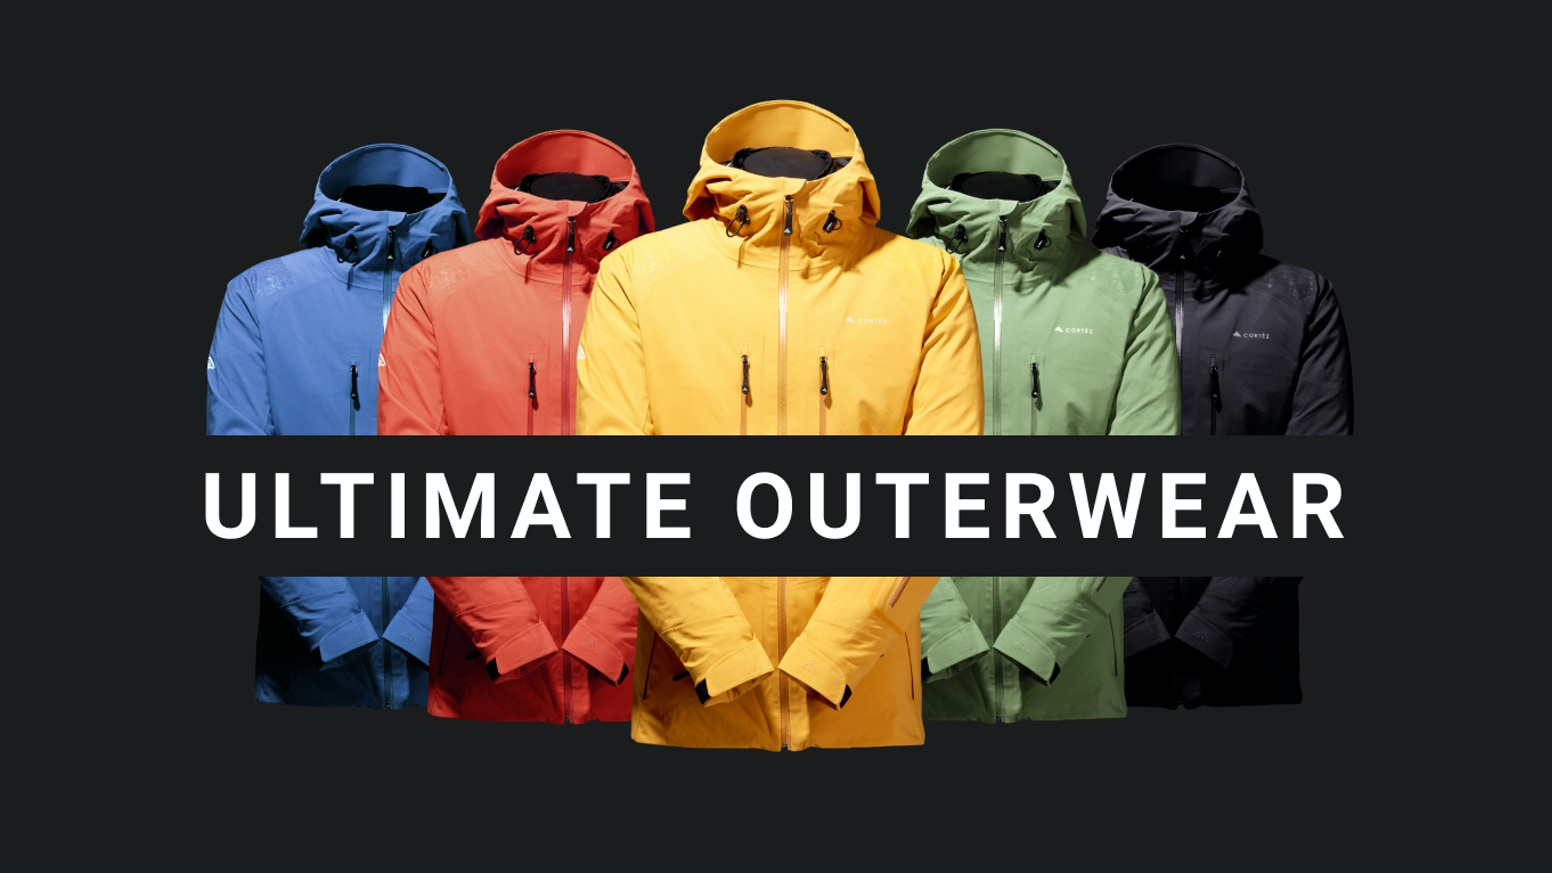 HIGH-QUALITY OUTERWEAR AT A REVOLUTIONARY PRICE by Cortèz is the top crowdfunding project launched today. HIGH-QUALITY OUTERWEAR AT A REVOLUTIONARY PRICE by Cortèz raised over $395926 from 1041 backers. Other top projects include Indestructible Sheer Tights Made With Bulletproof Fibers, The World's First Convertible and Customizable Carry Bags, Taskin Kompak System | Travel Gear Gets a Serious Upgrade...